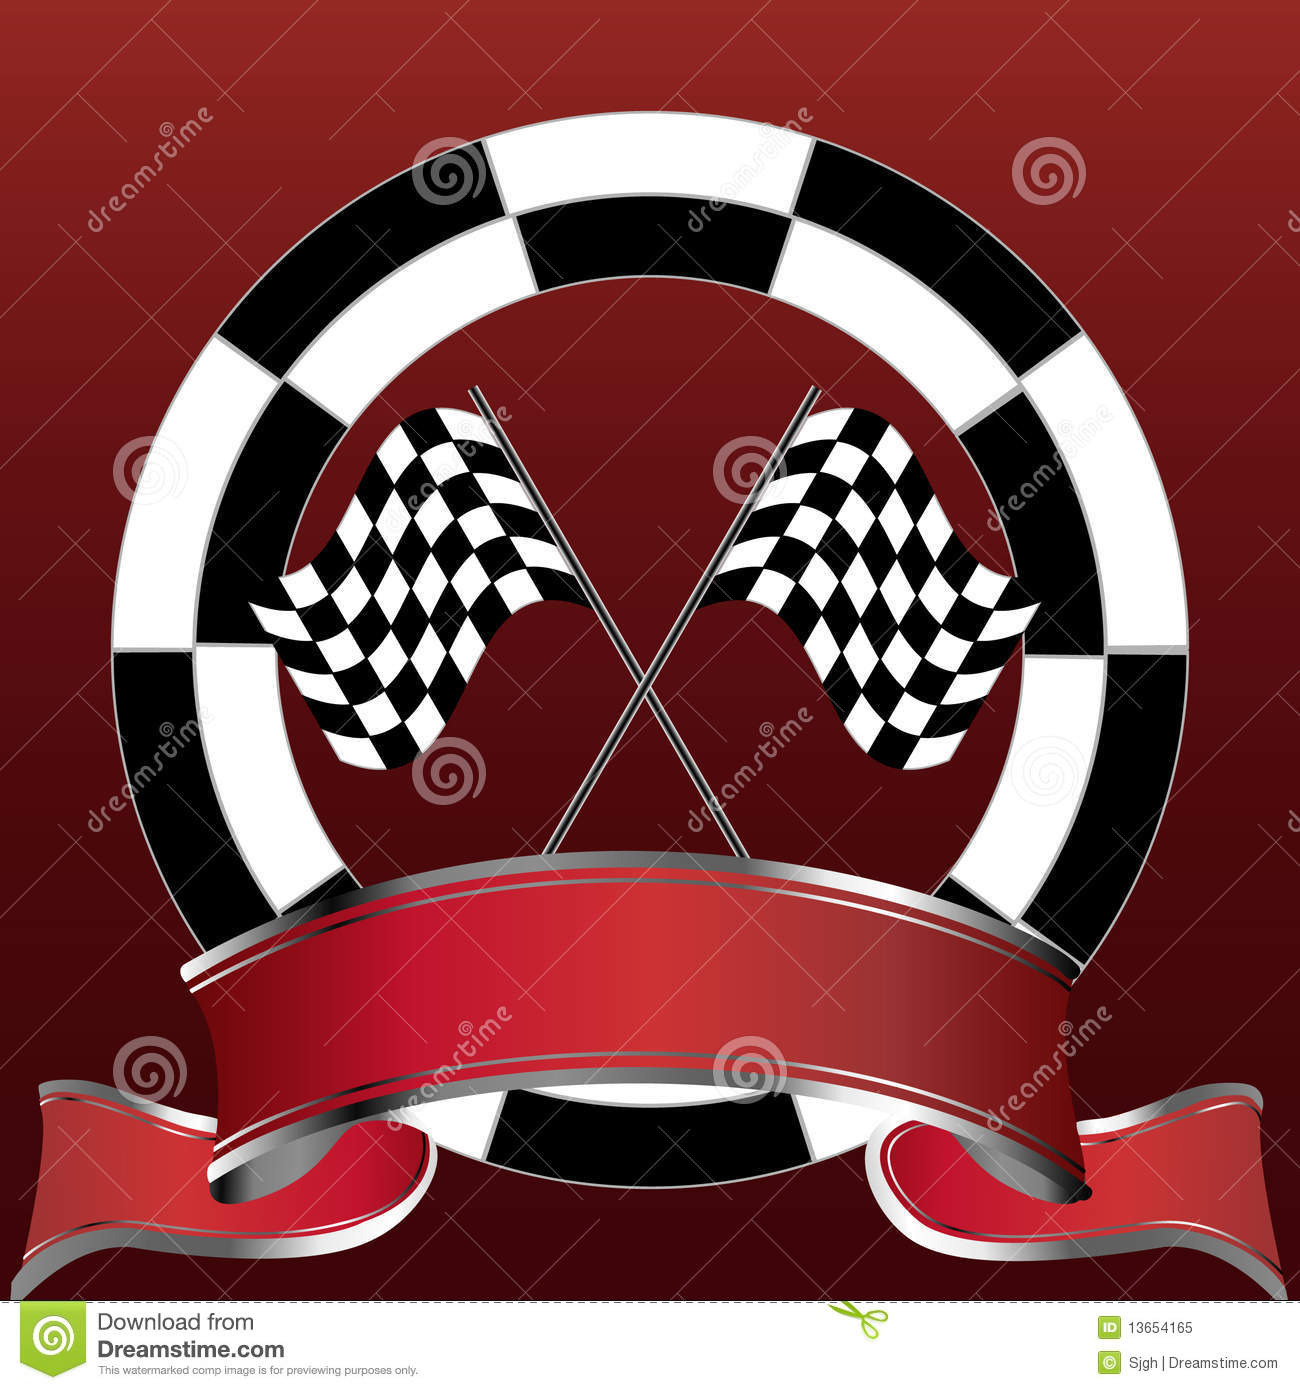 Racing Checkered Flag >> Racing Emblem With Checkered Flags And Red Banner Stock Vector - Illustration of competition ...